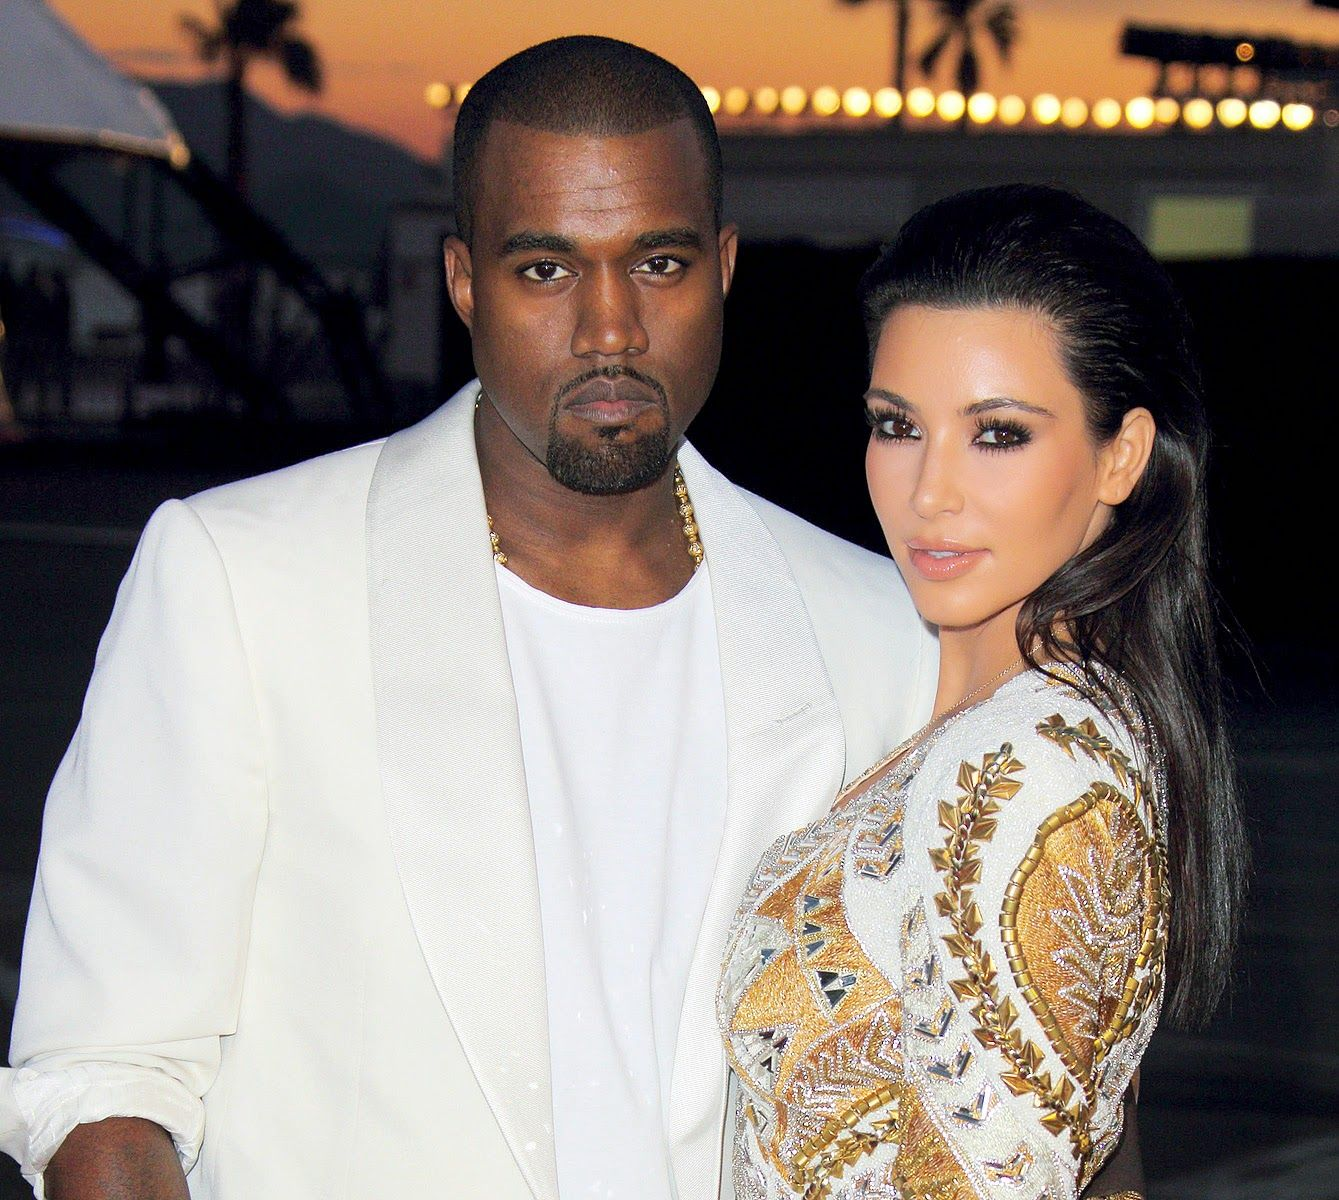 The much talked about Hollywood couple Kim Kardashian and Kanye West are all set to get married on 24th of May in Forte Belvedere at Florence, Italy. Following an evening event at le Palais de Versailles, guests will be flown via private jet to Florence.